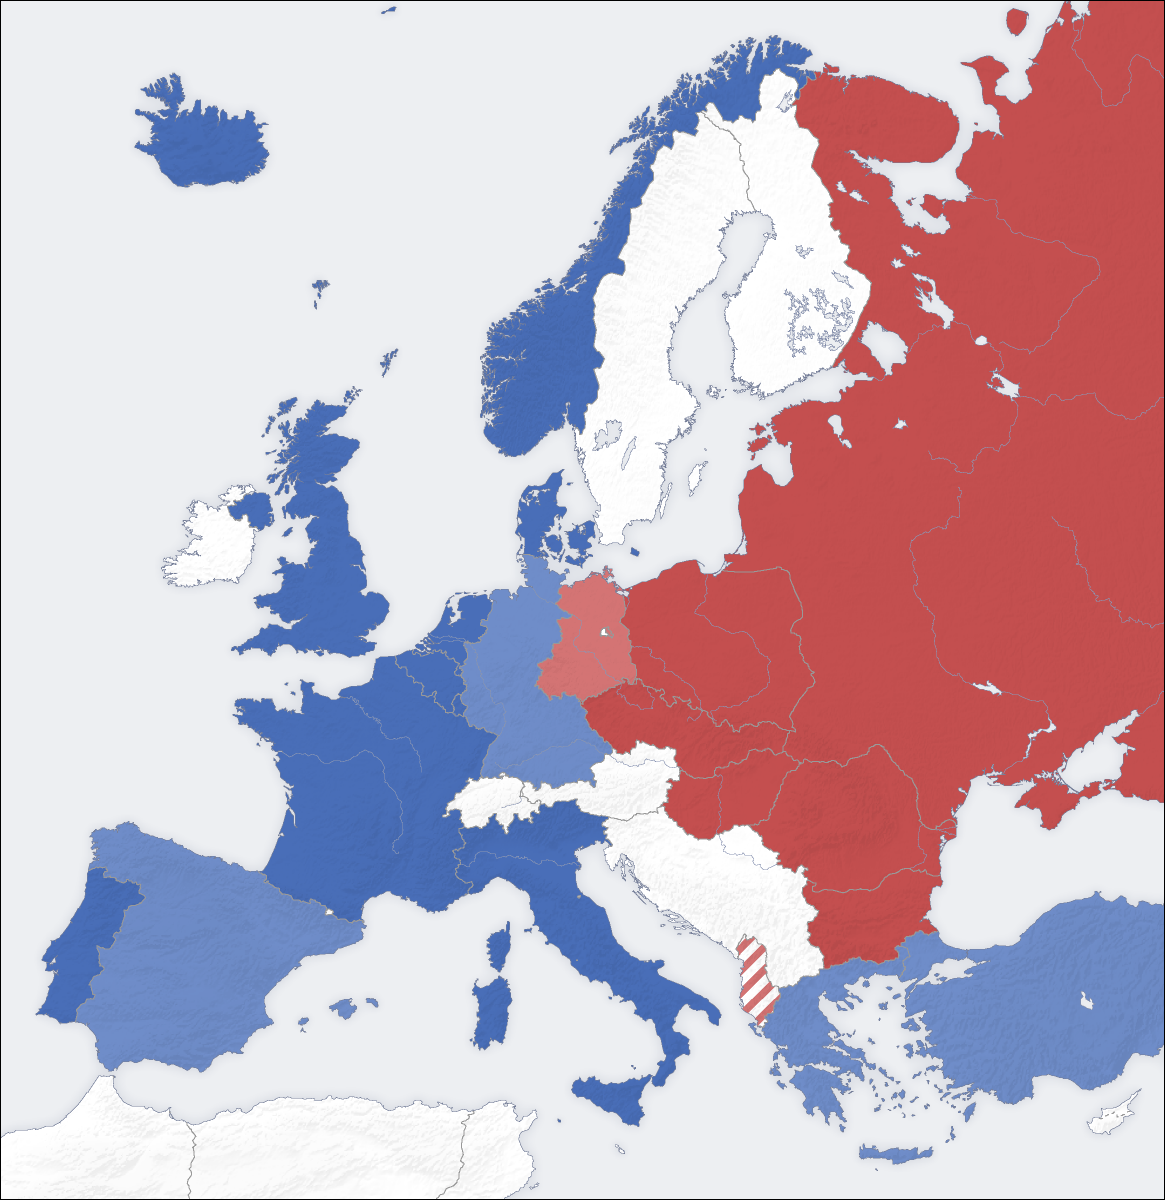 Datei:Cold war europe military alliances map.png – Wikipedia